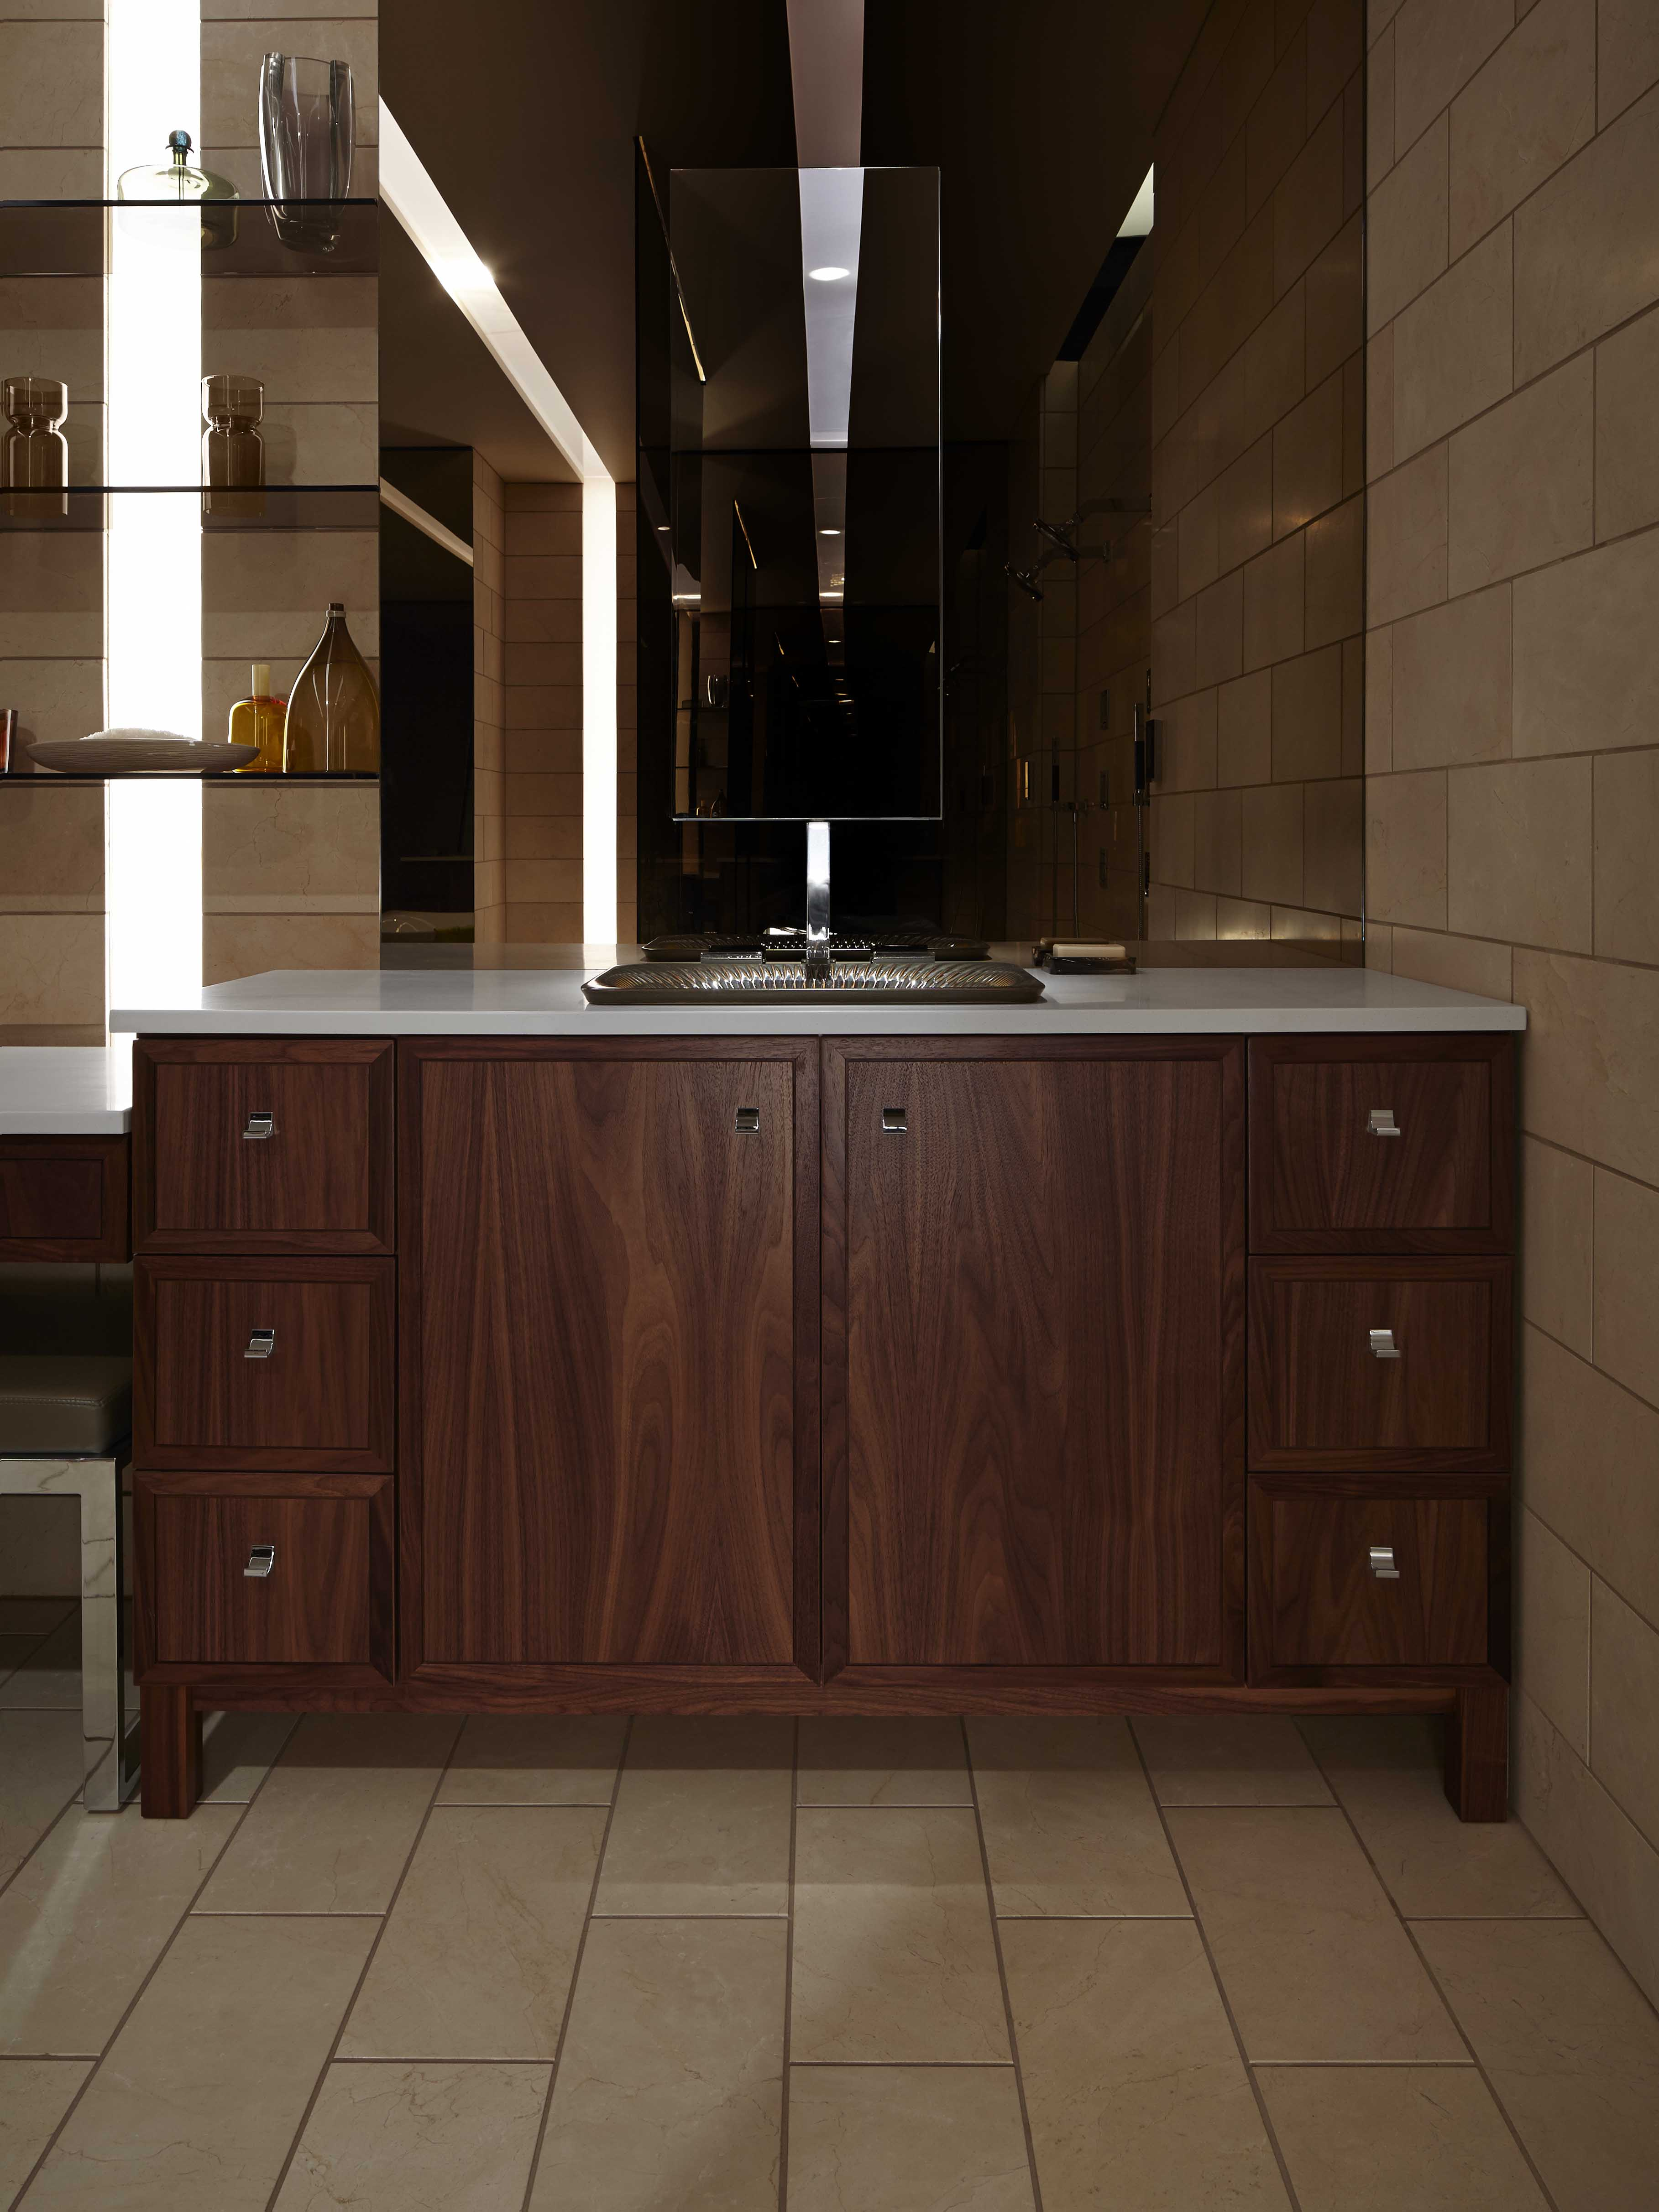 Jacquard® Vanity     Loure® Faucet     The dark finish on this vanity blends seamlessly with the room's moody atmosphere.